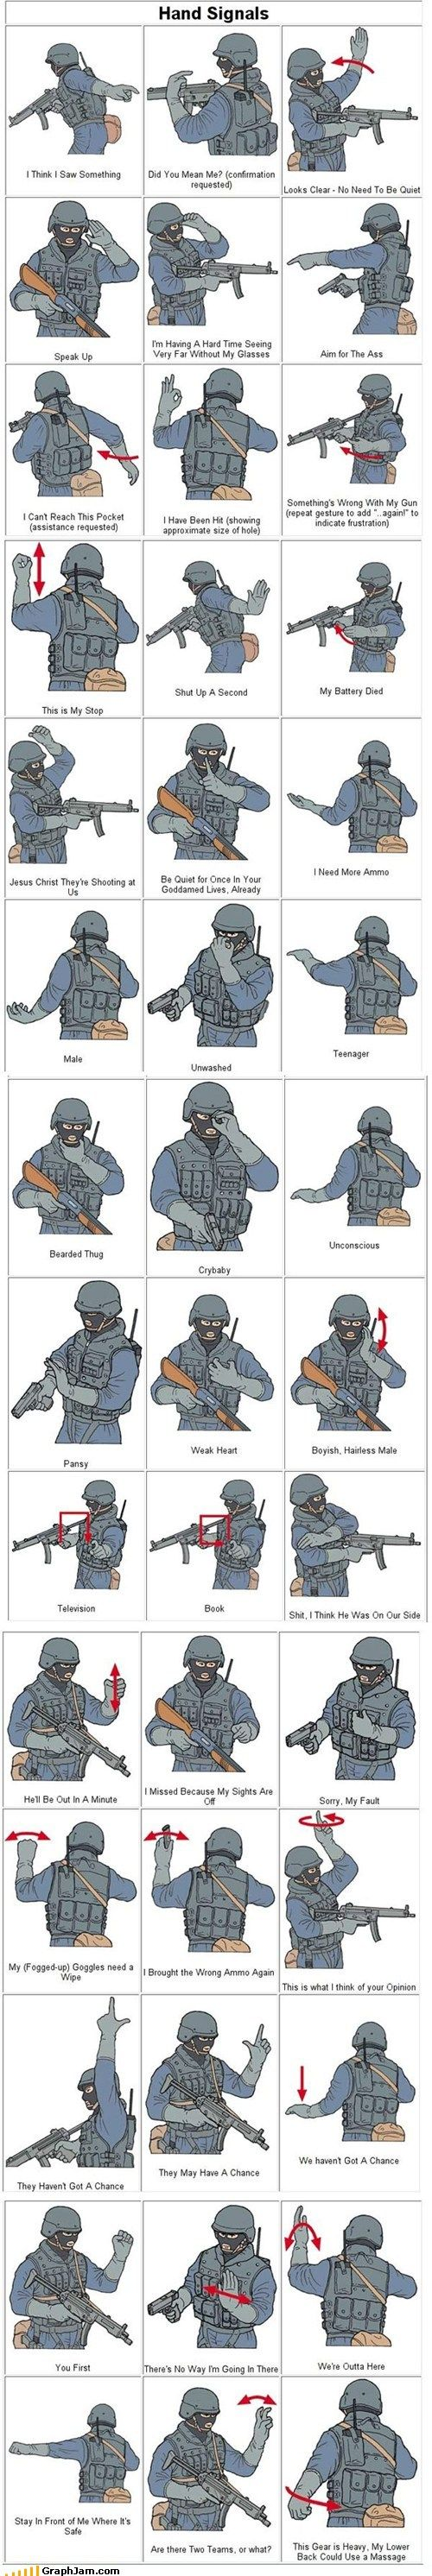 SWAT/Military hand signals